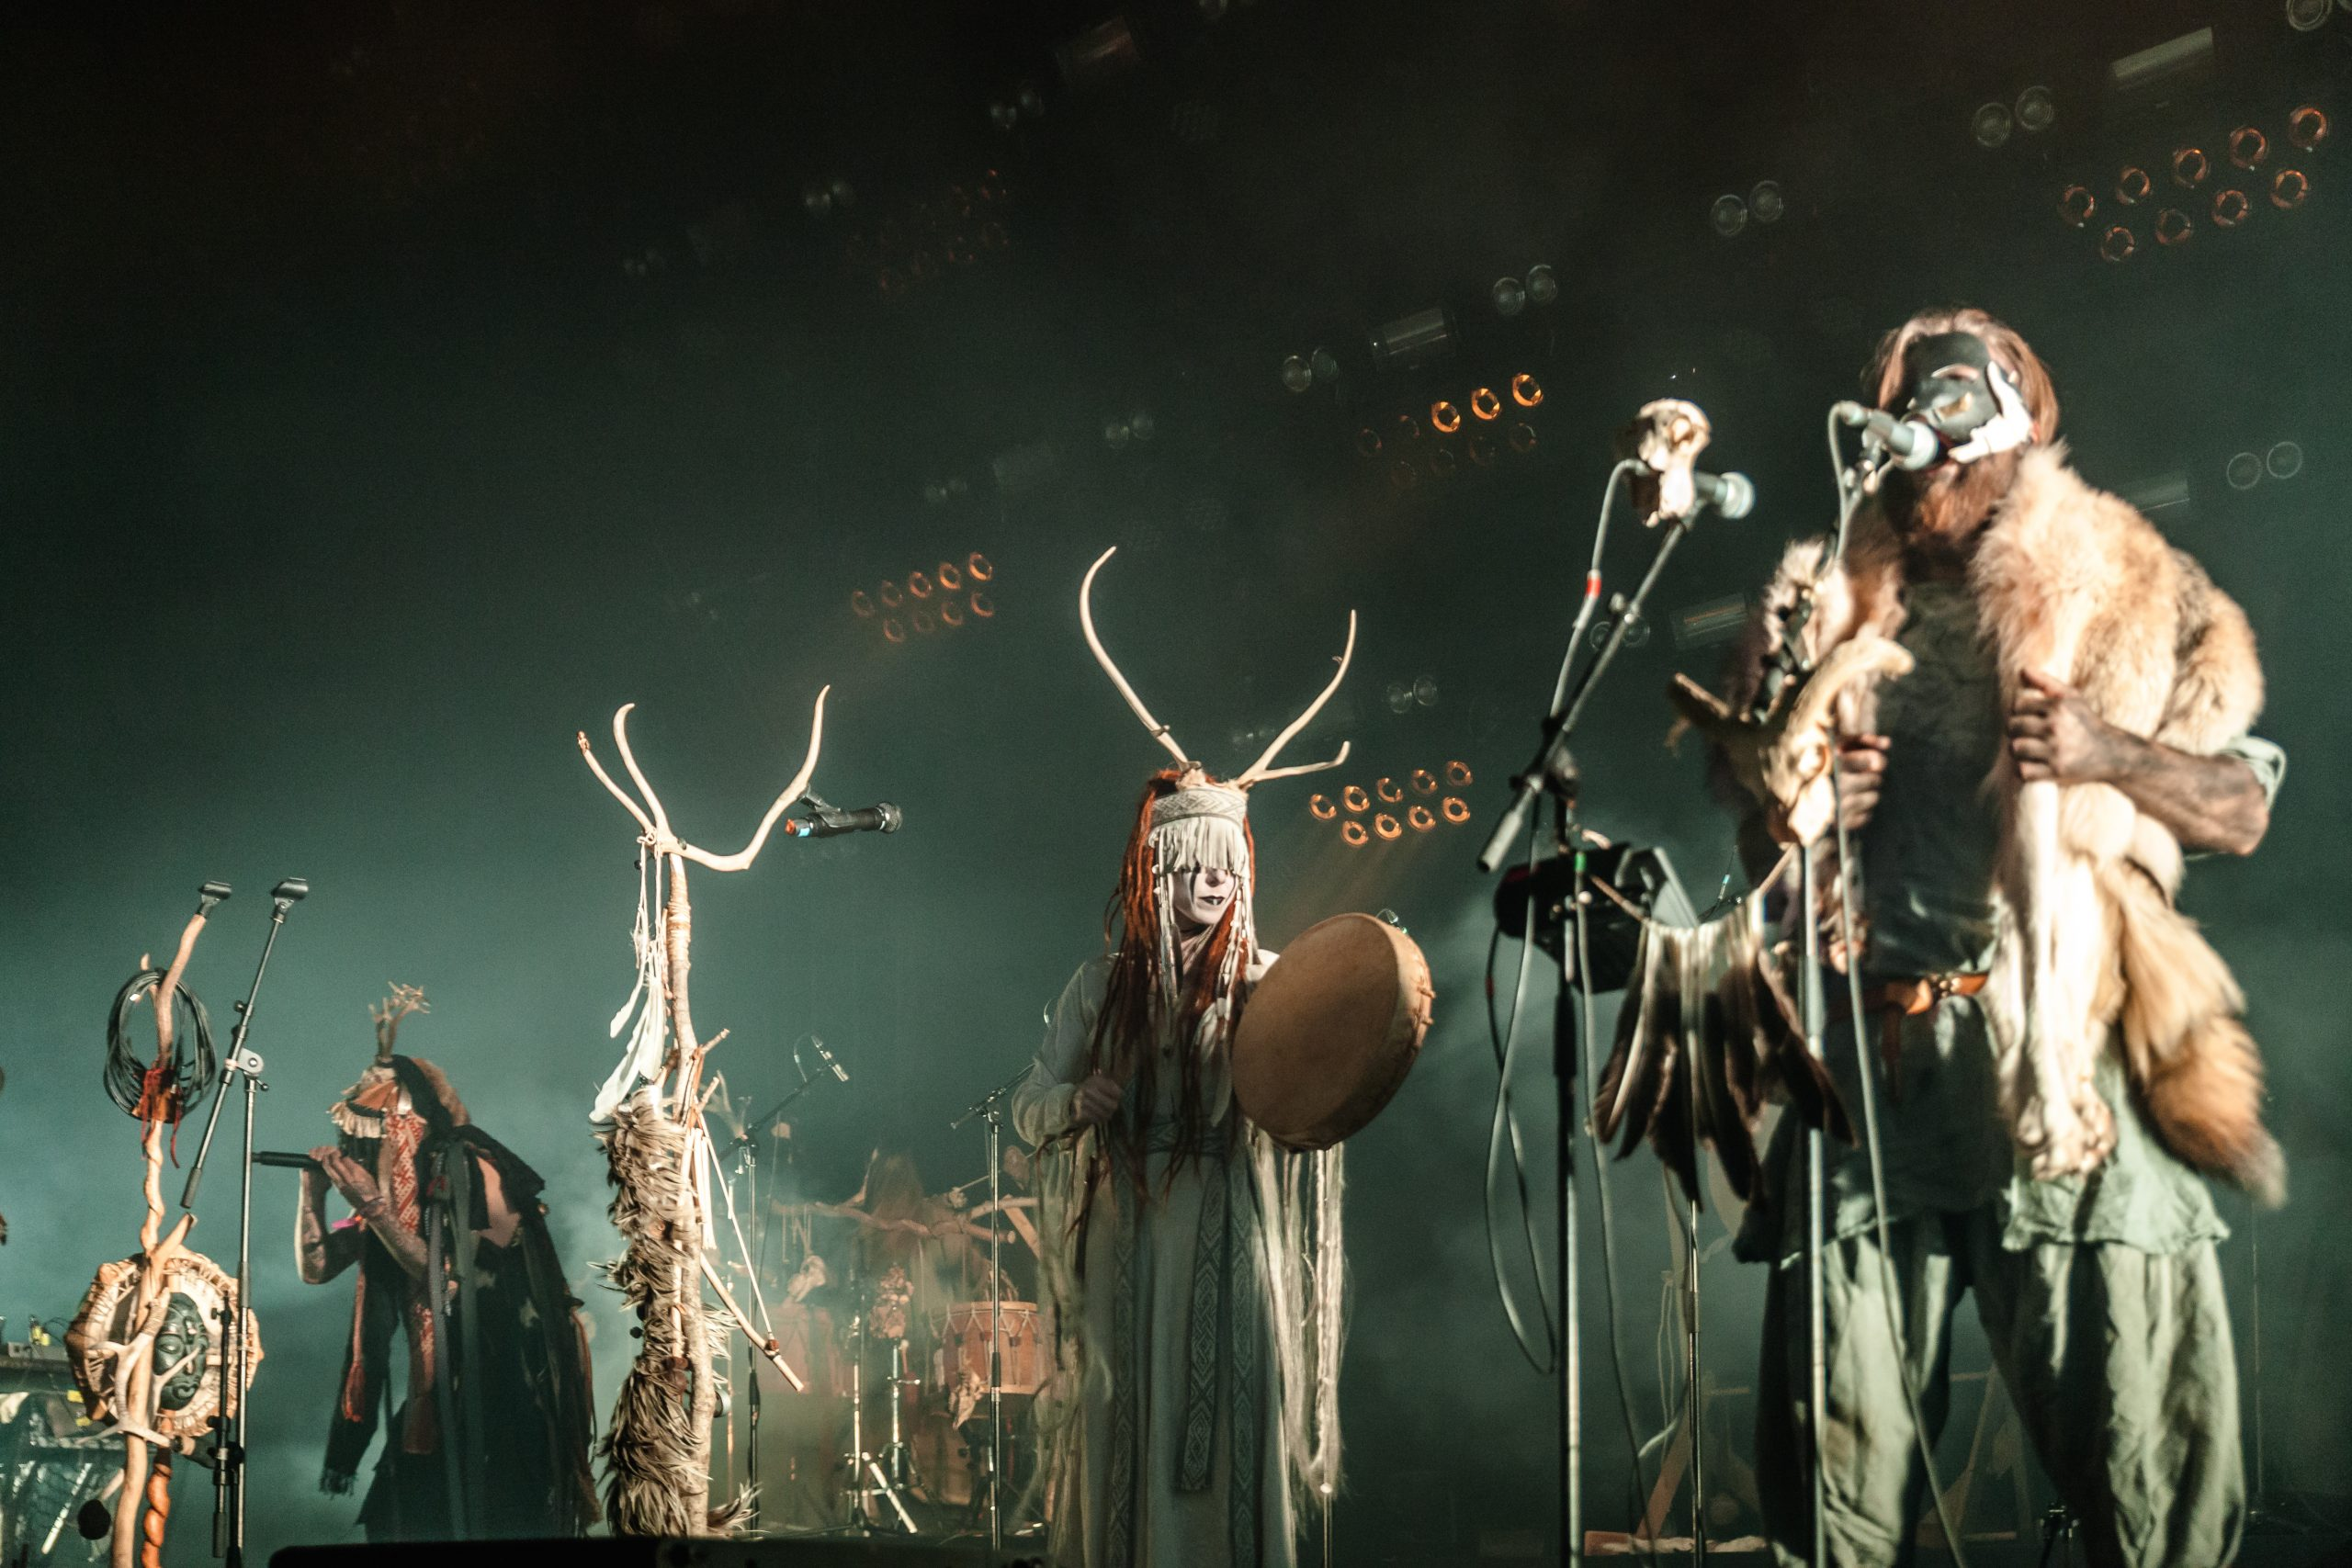 Heilung – Ofnir for coding